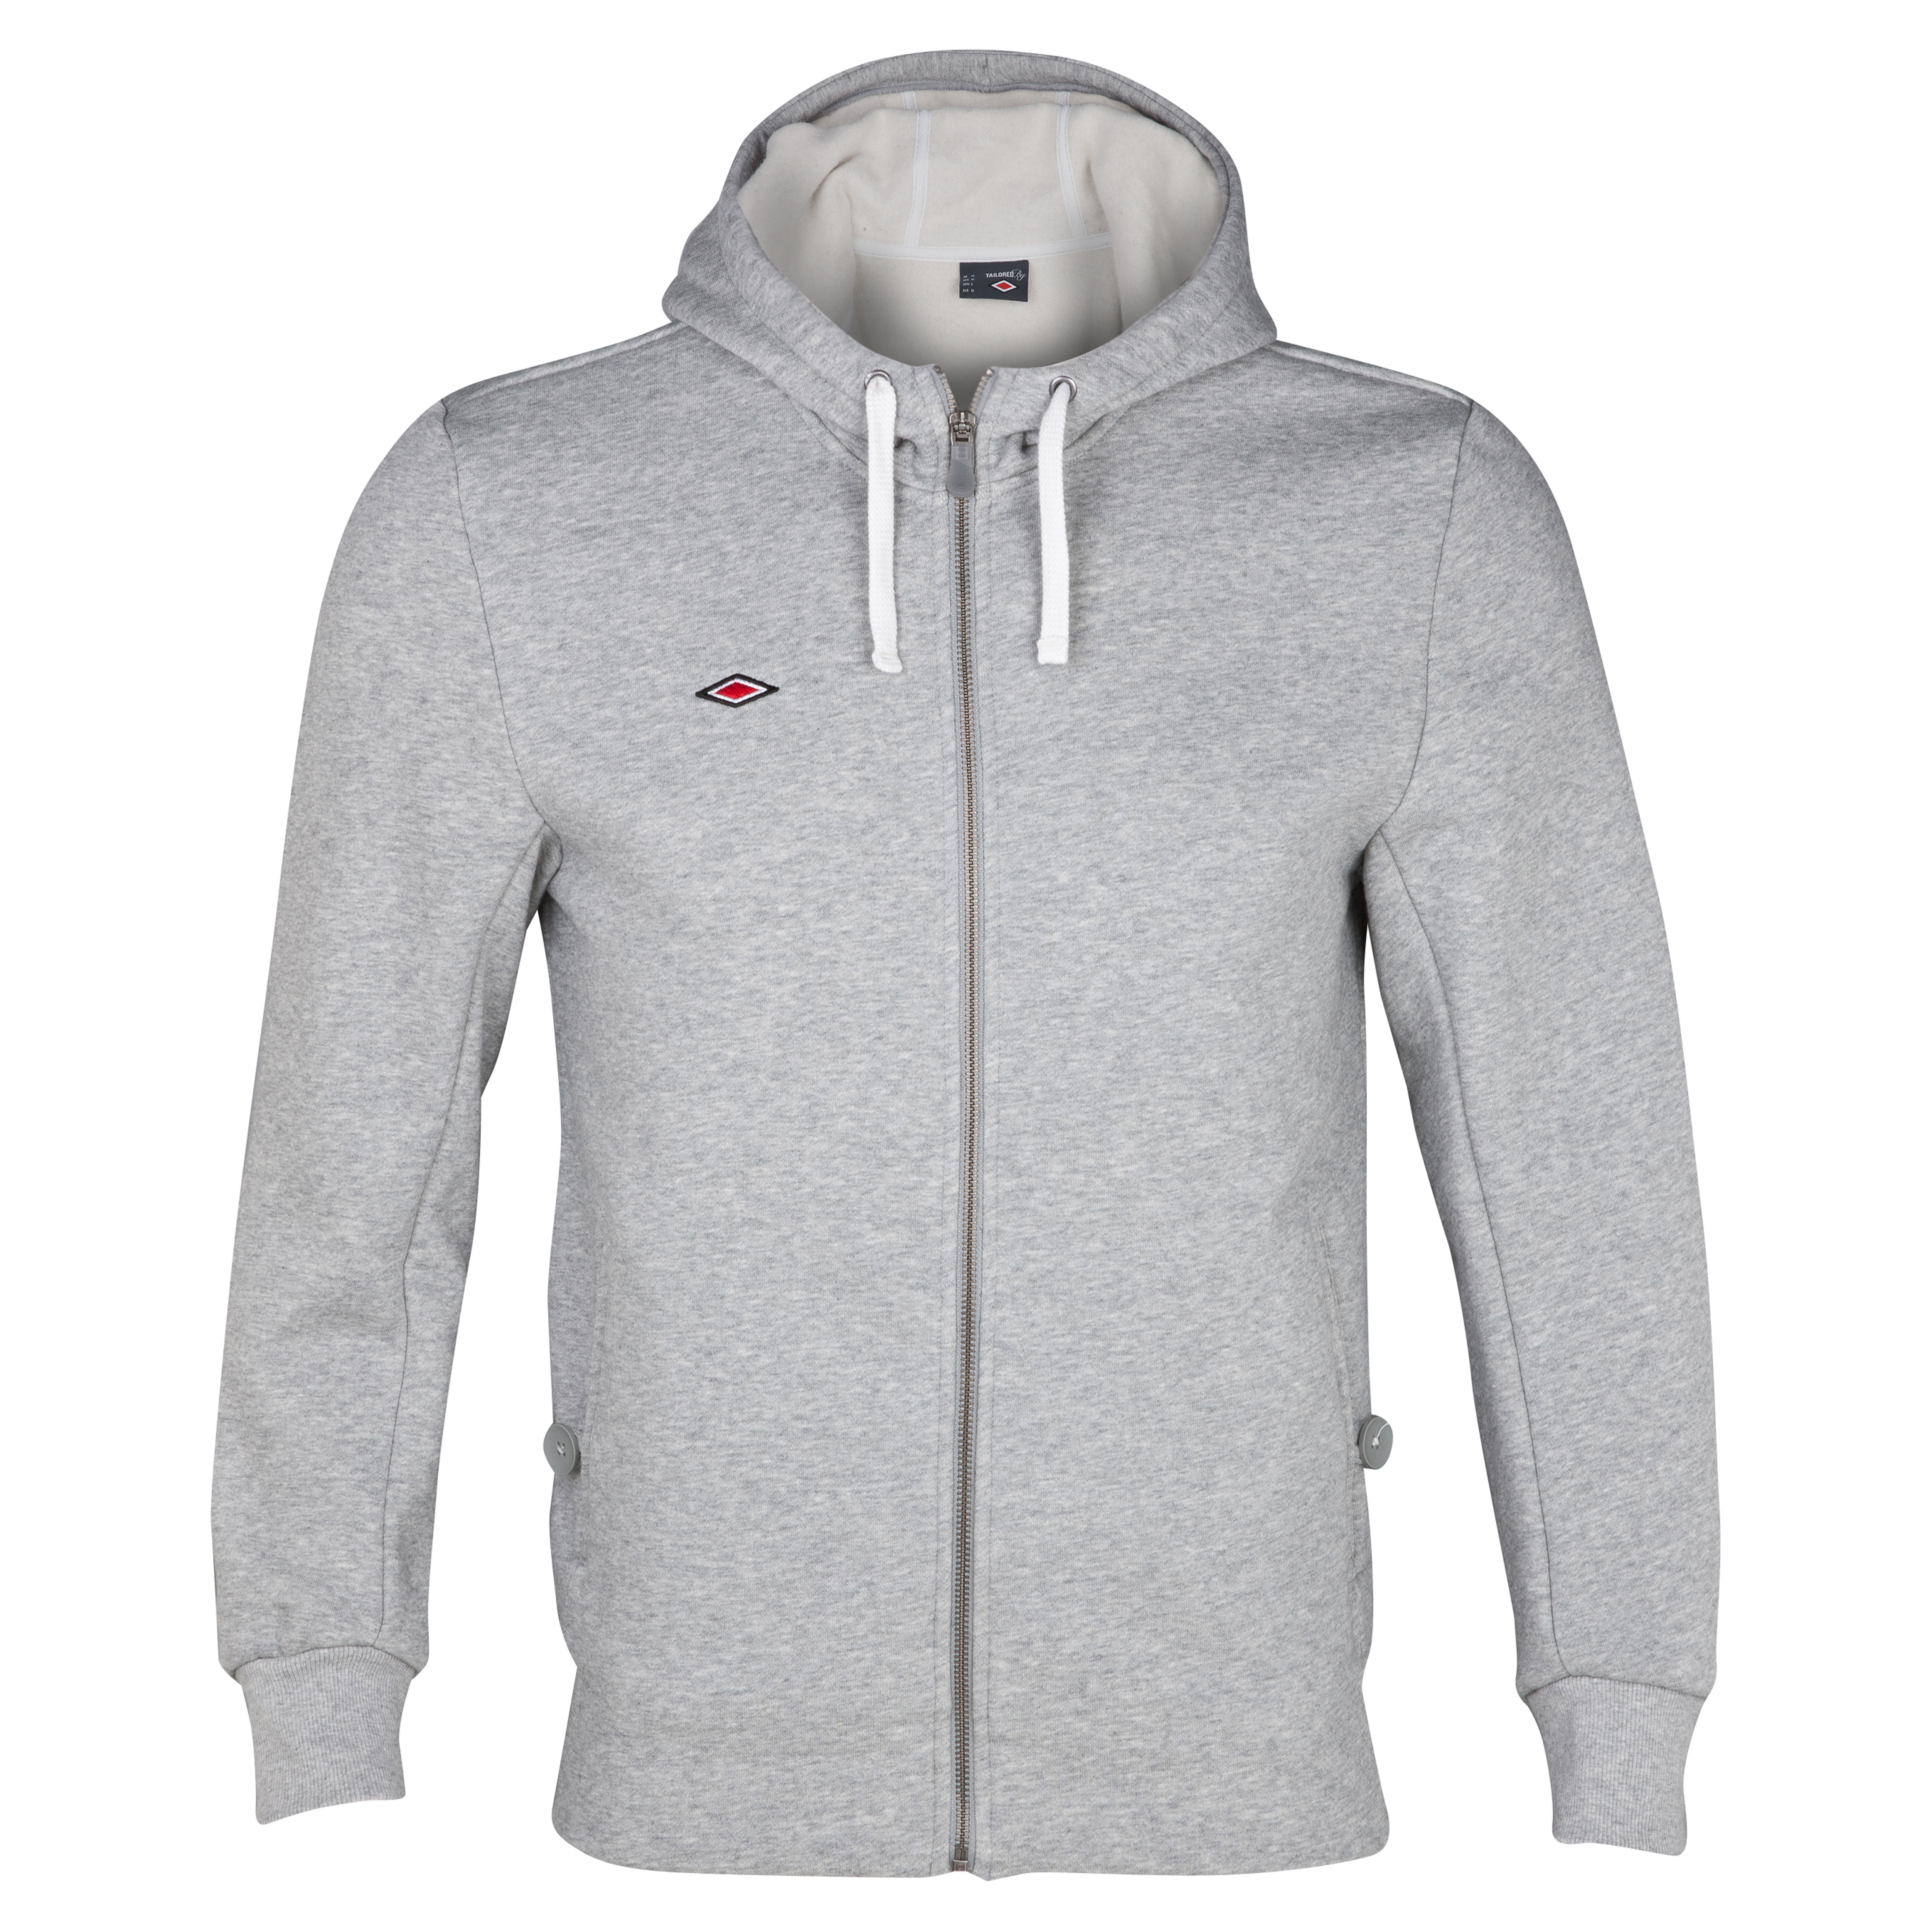 Umbro Full Zip Hooded Sweatshirt - Grey Marl